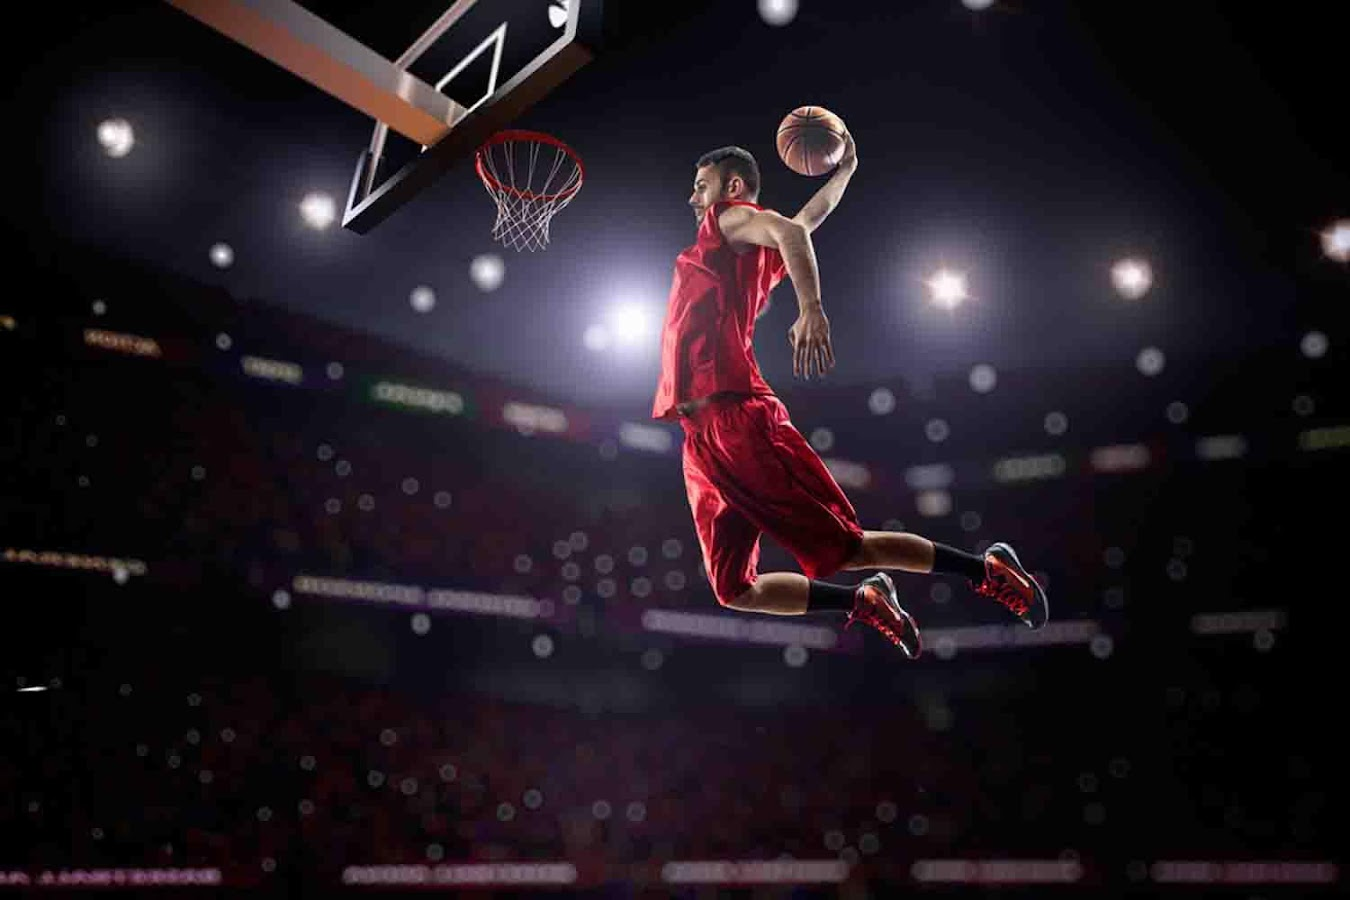 basketball wallpaper android apps on google play